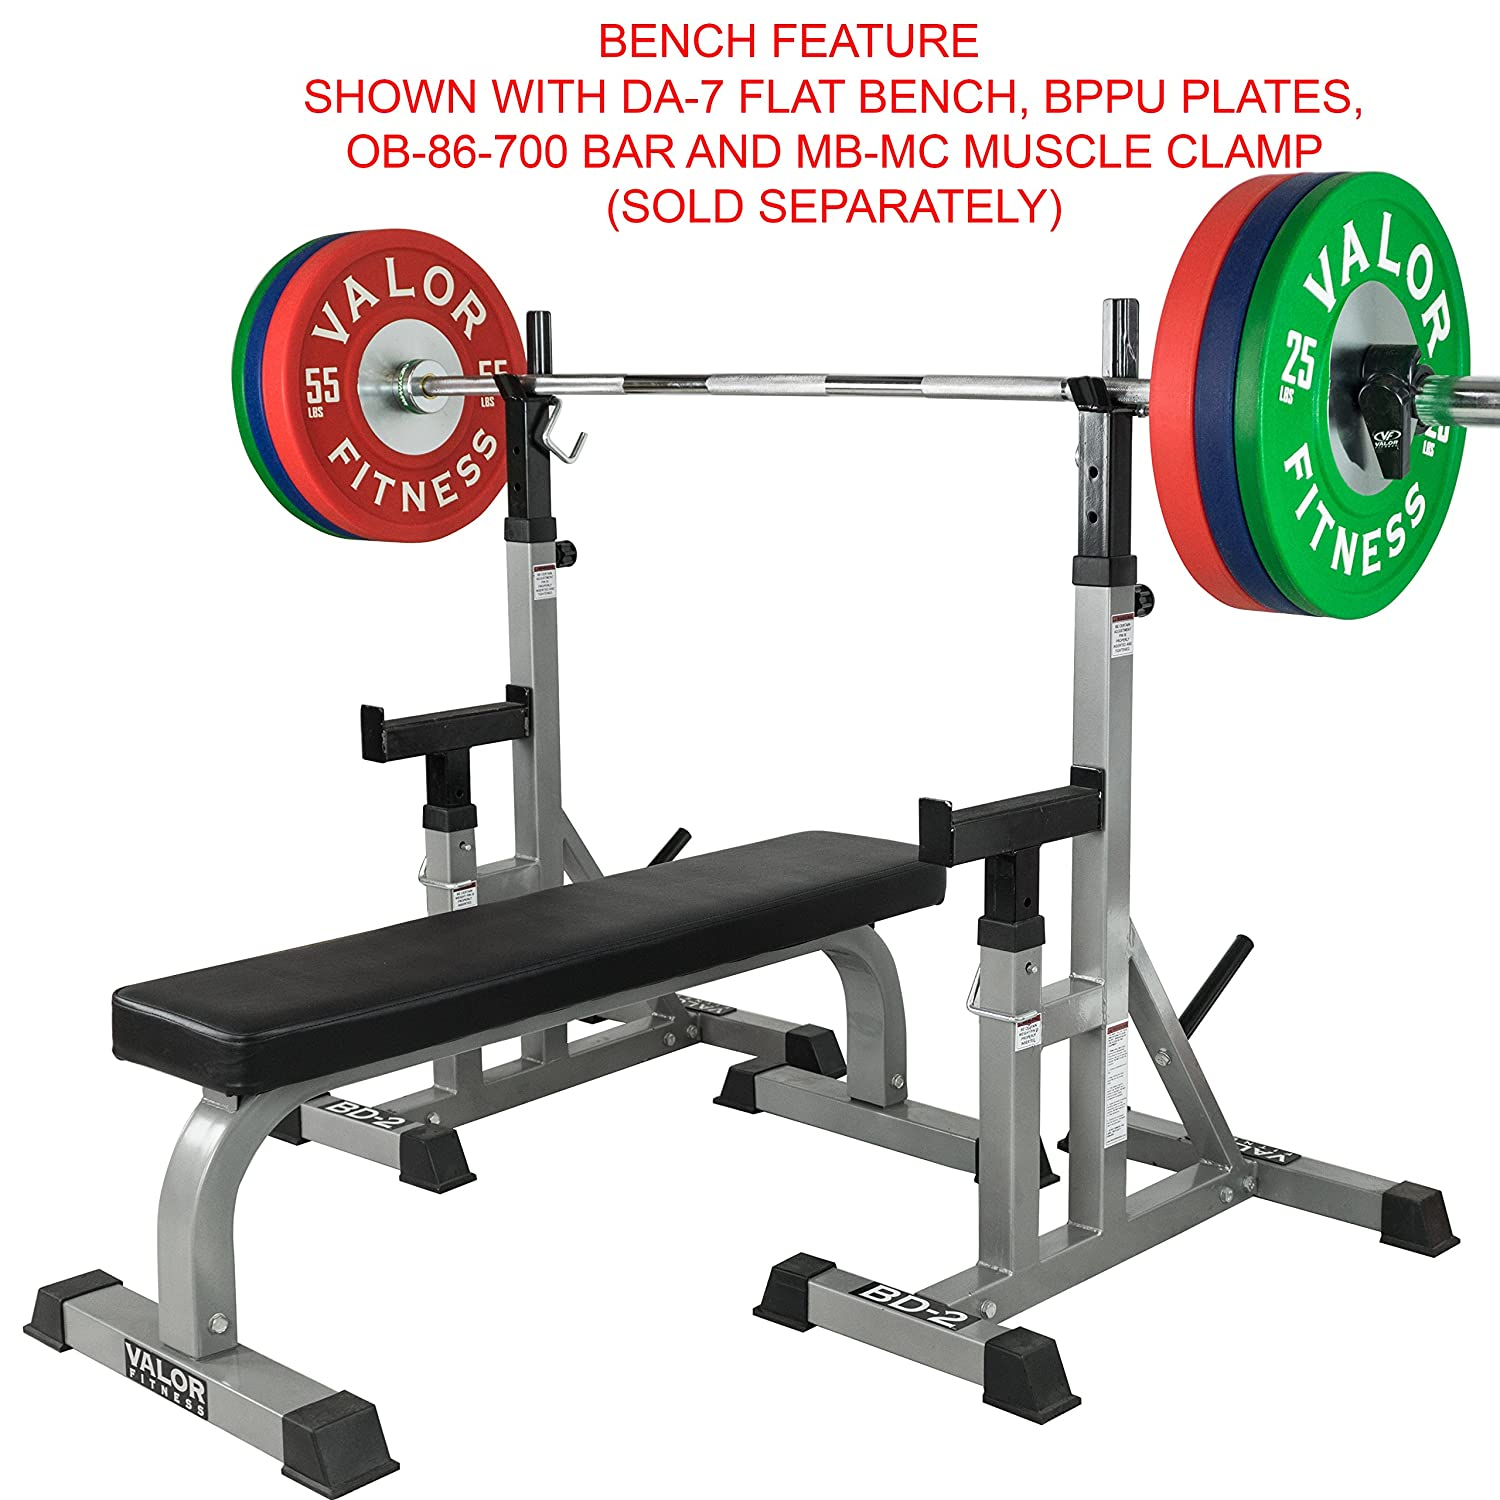 bar products savage with york bench sts press flat olympic strength gun racks weight